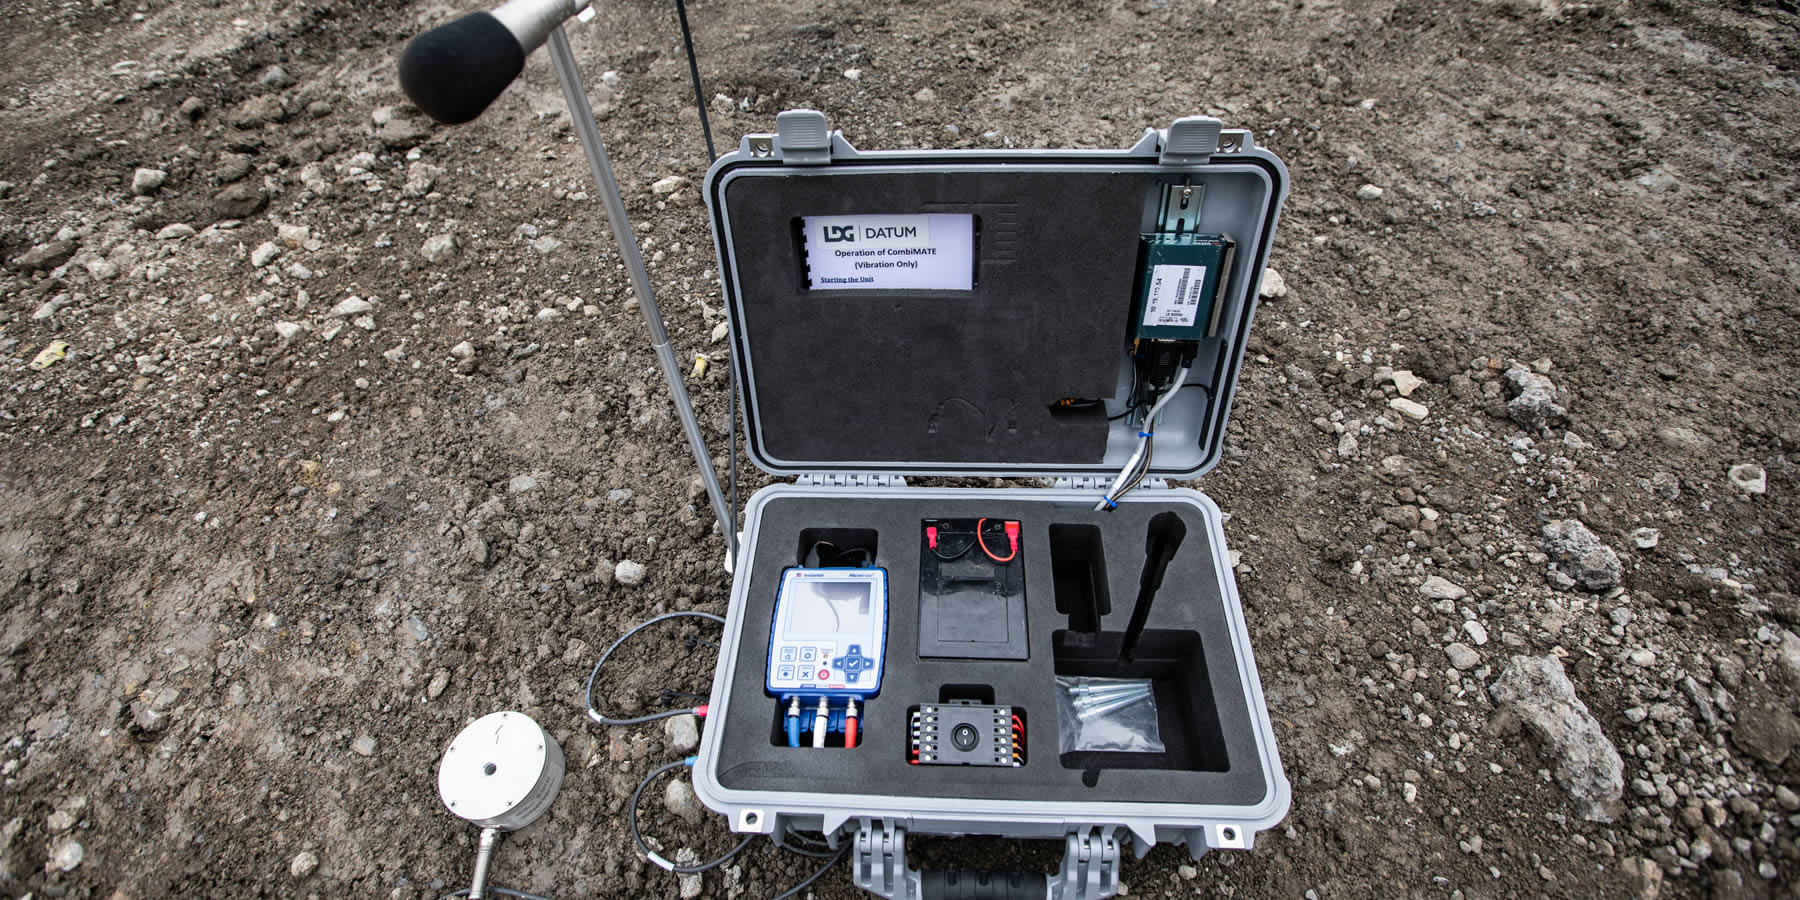 CombiMate Portable Vibration & Noise Monitoring Images